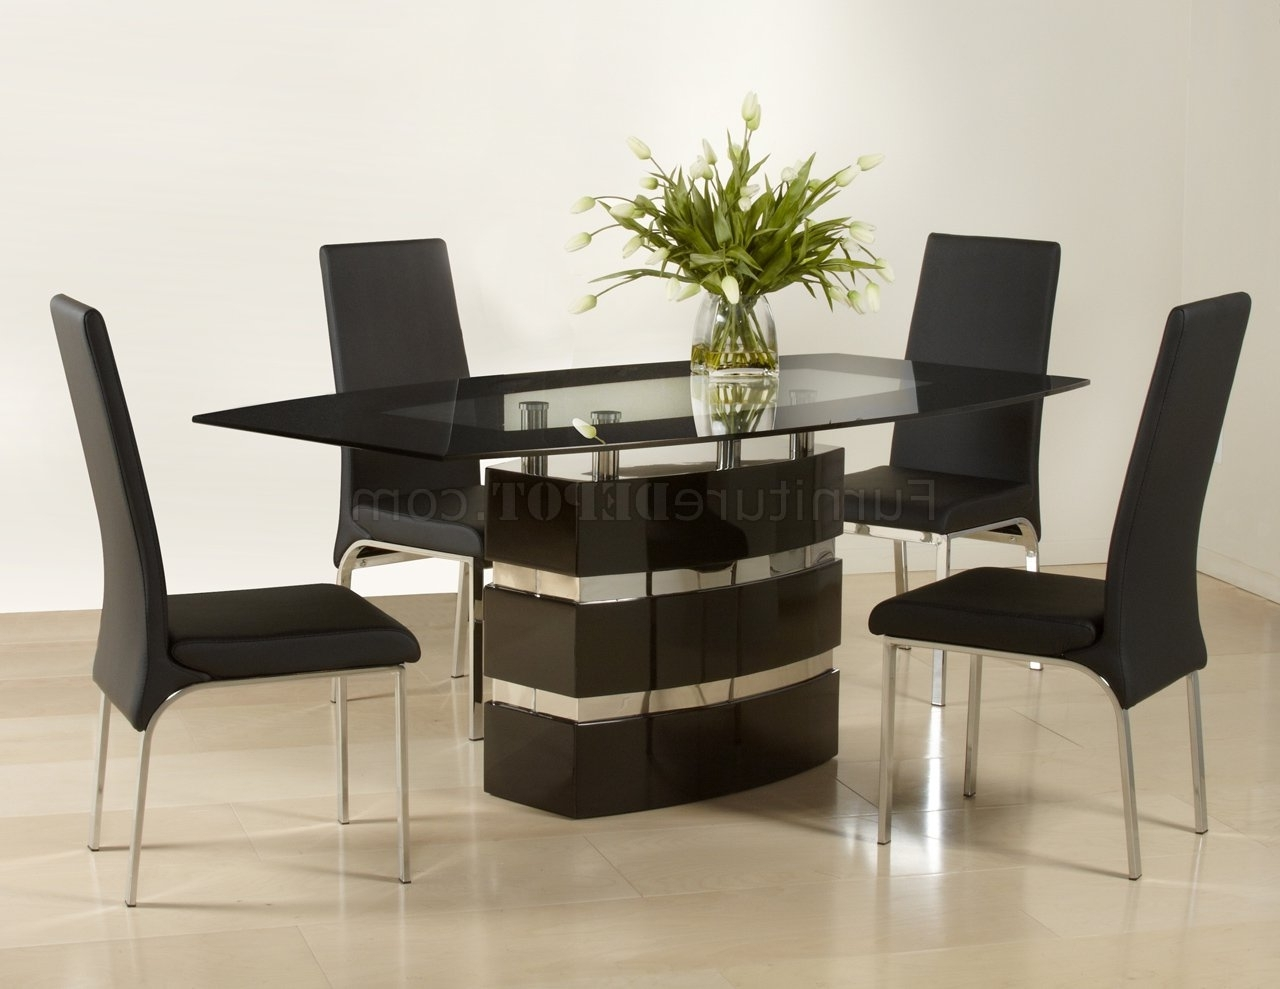 Black High Gloss Finish Modern Dining Table W/optional Chairs Throughout Newest Modern Dining Sets (View 23 of 25)